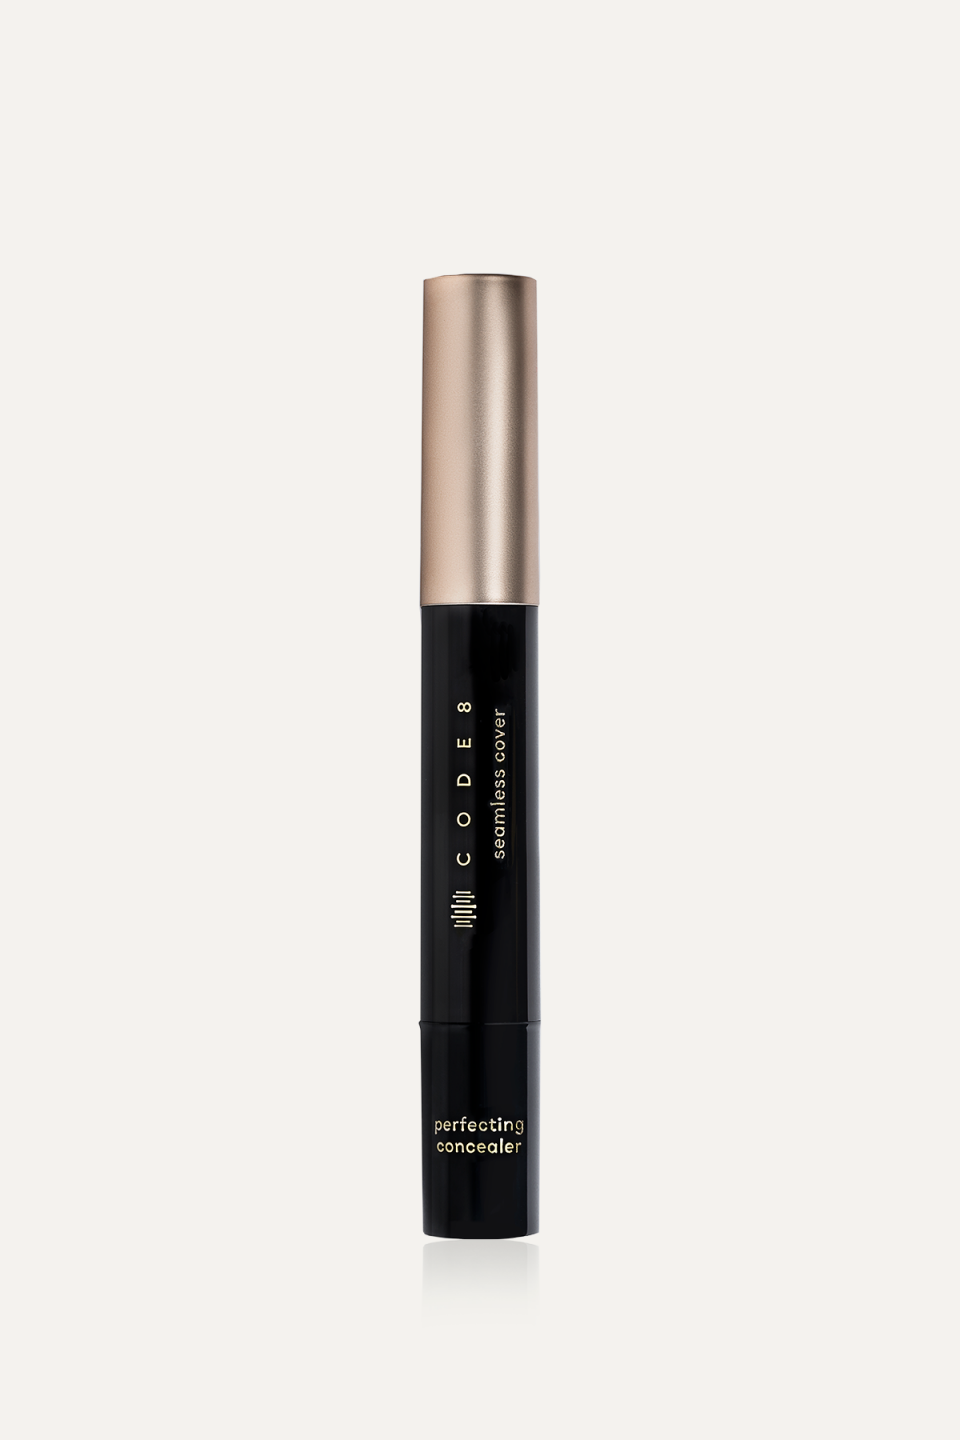 Code 8 Seamless Cover Liquid Concealer Shade nw50